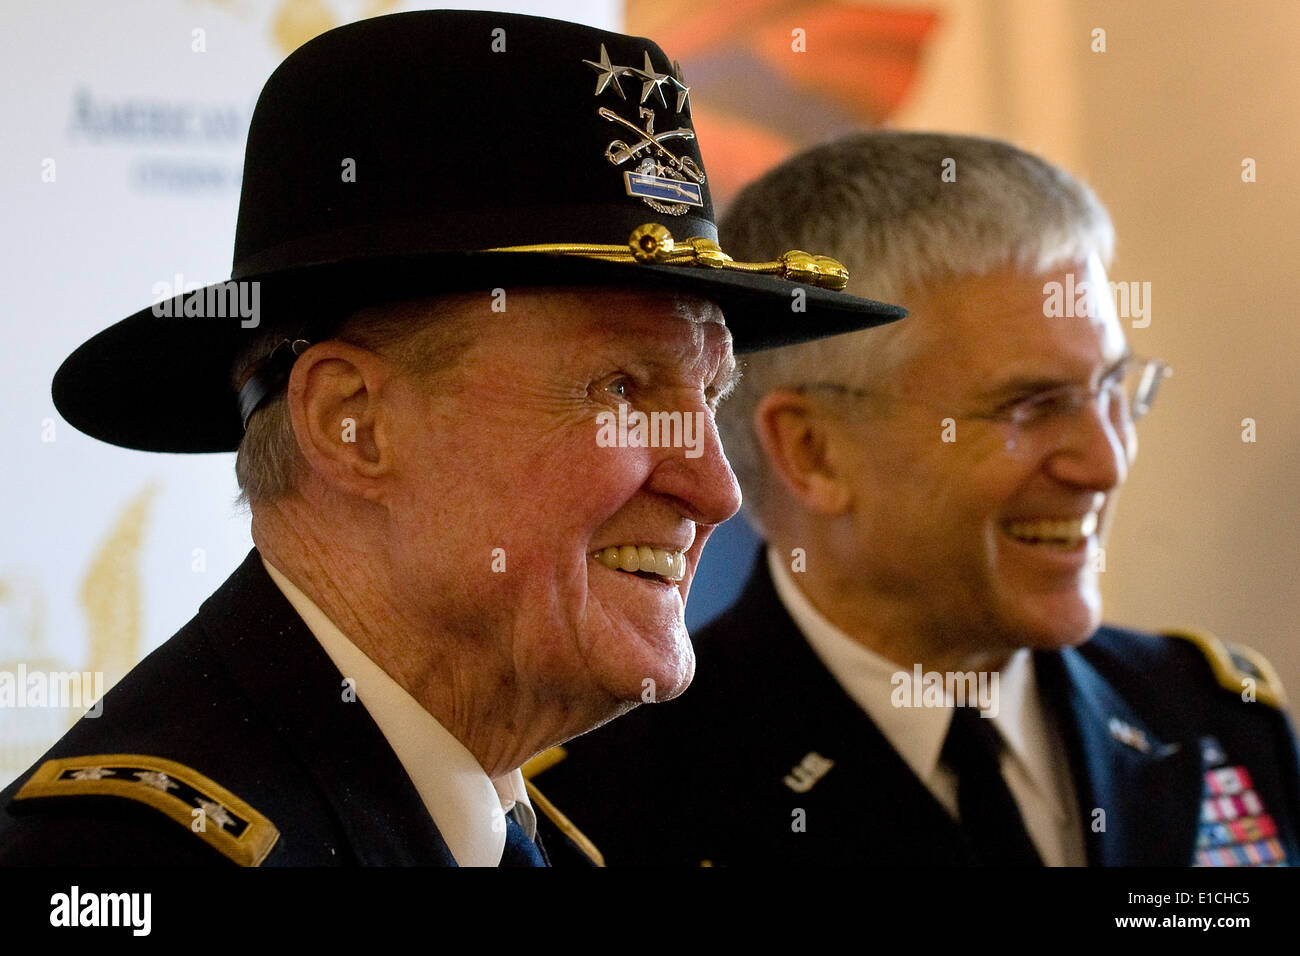 Army lt gen harold moore ret and gen george w casey jr army lt gen harold moore ret and gen george w casey jr chief of staff of the army answer questions during a press con altavistaventures Image collections